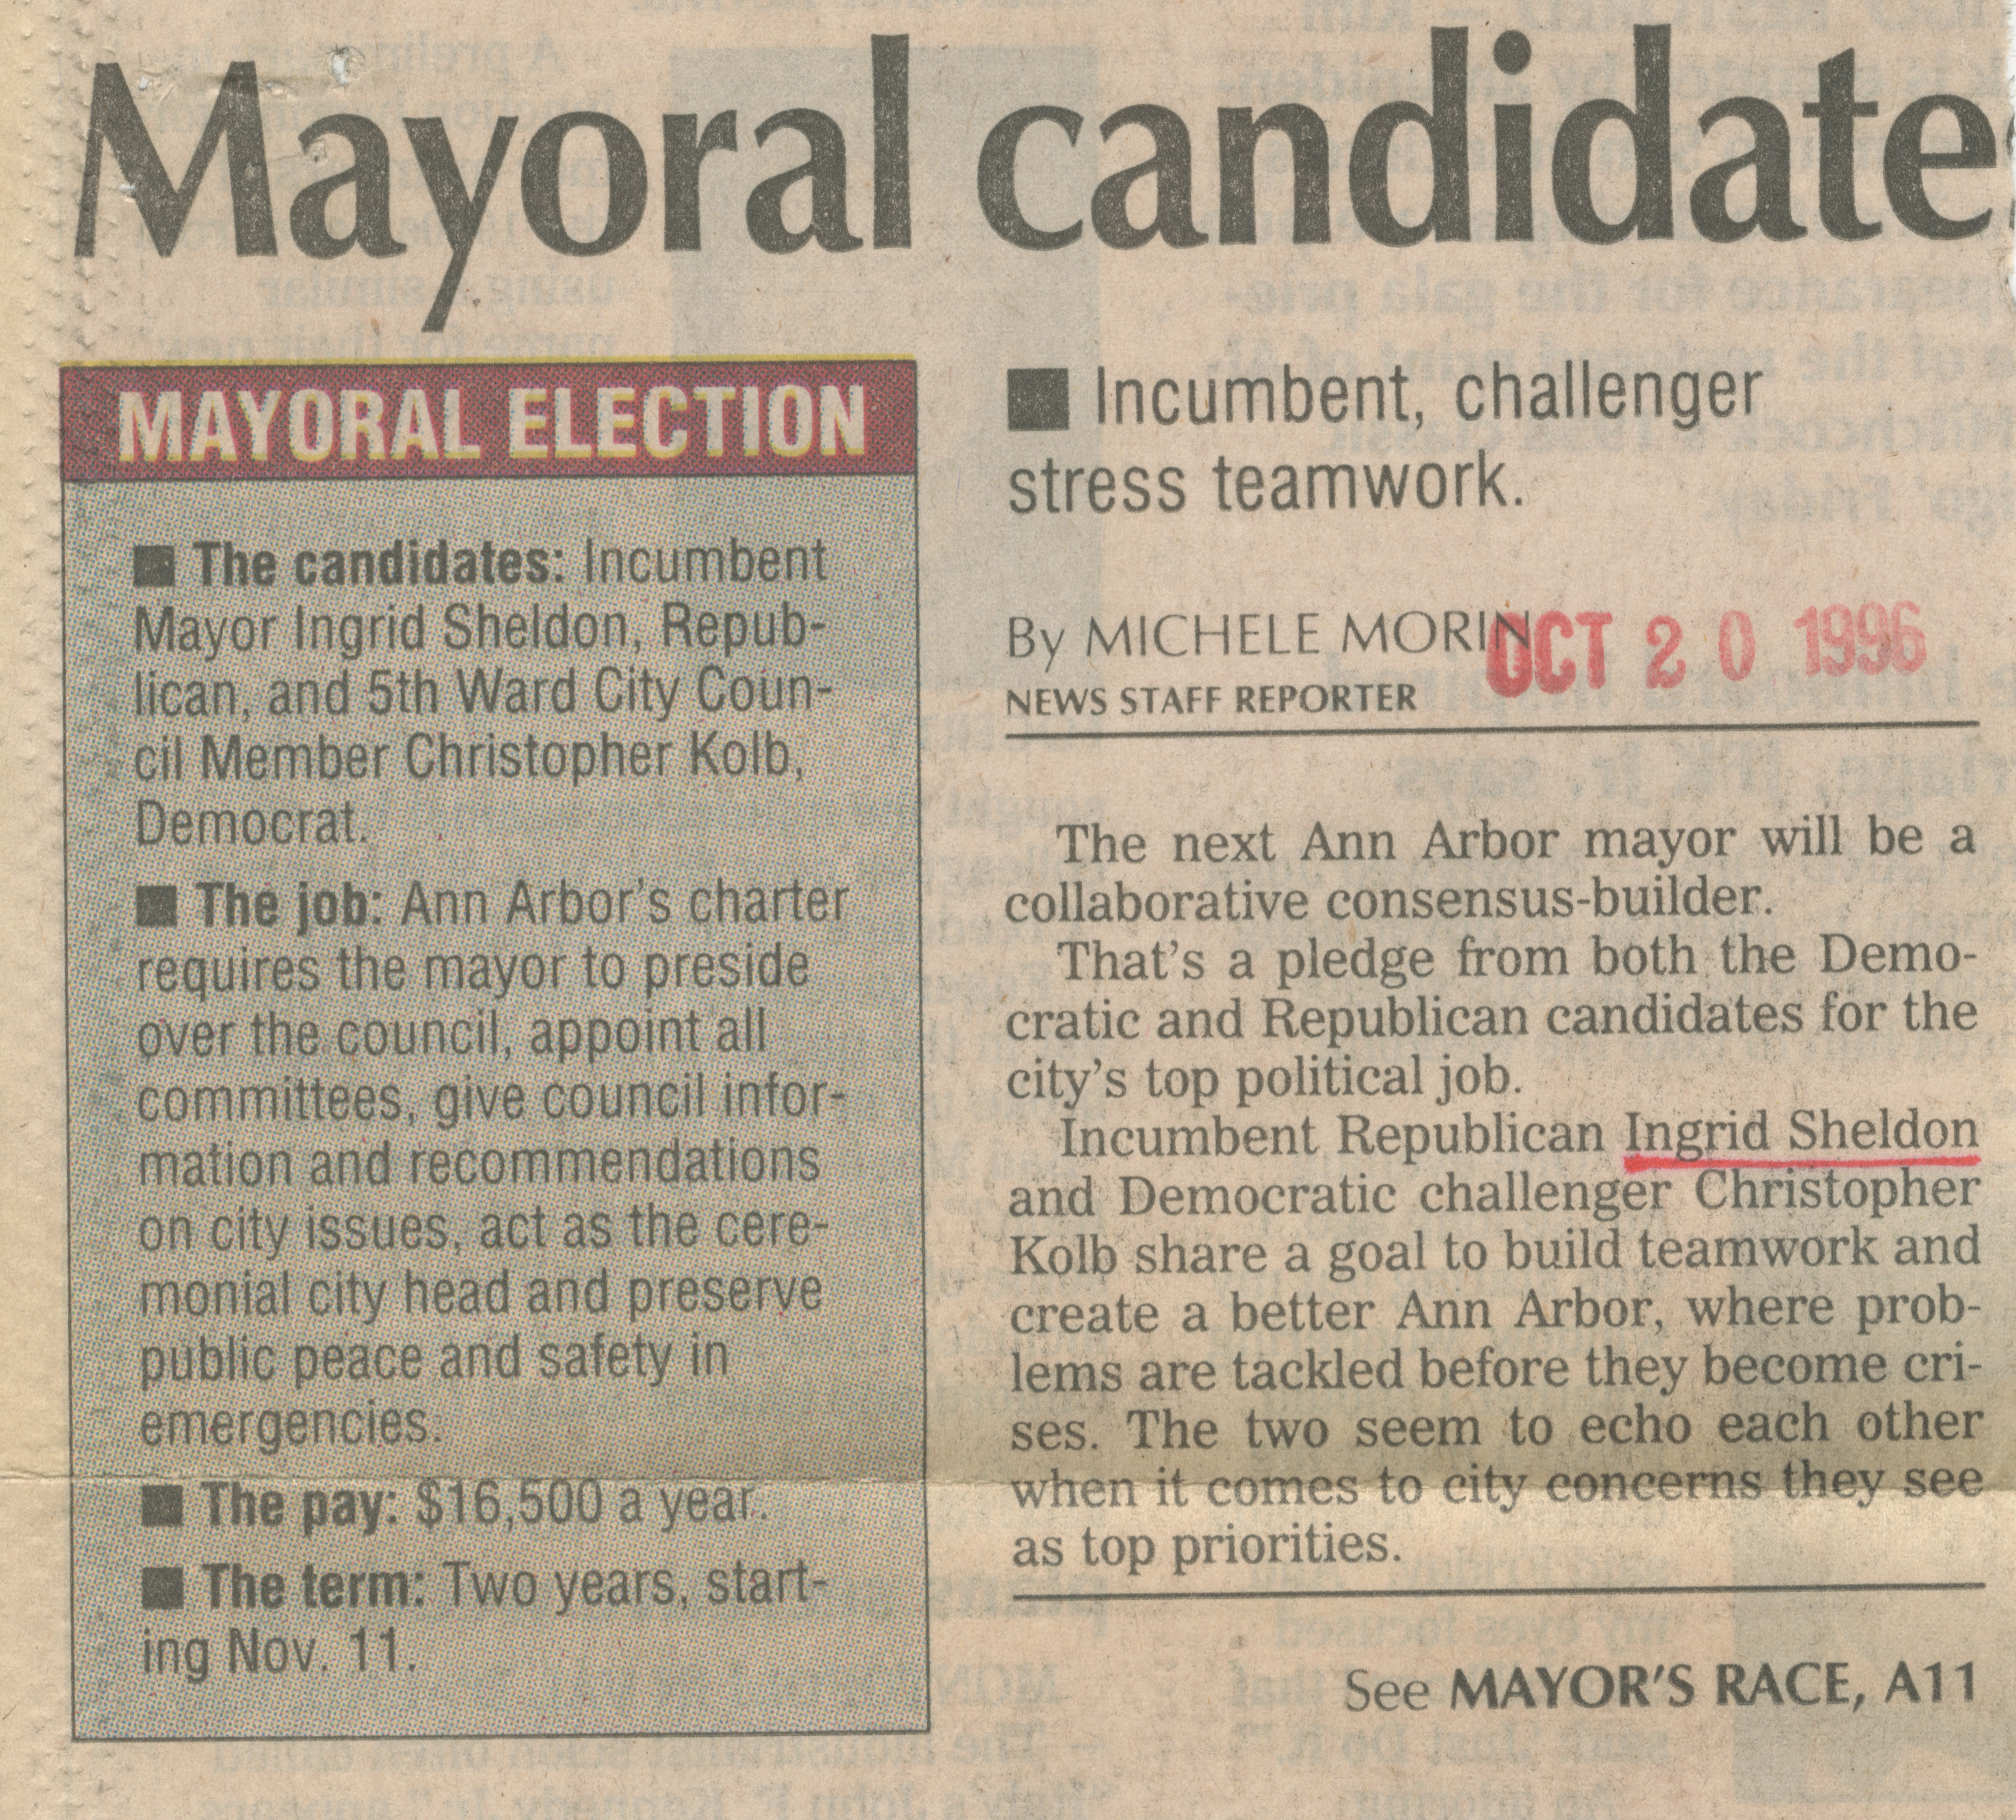 Mayoral candidates differ on approach to same goals image